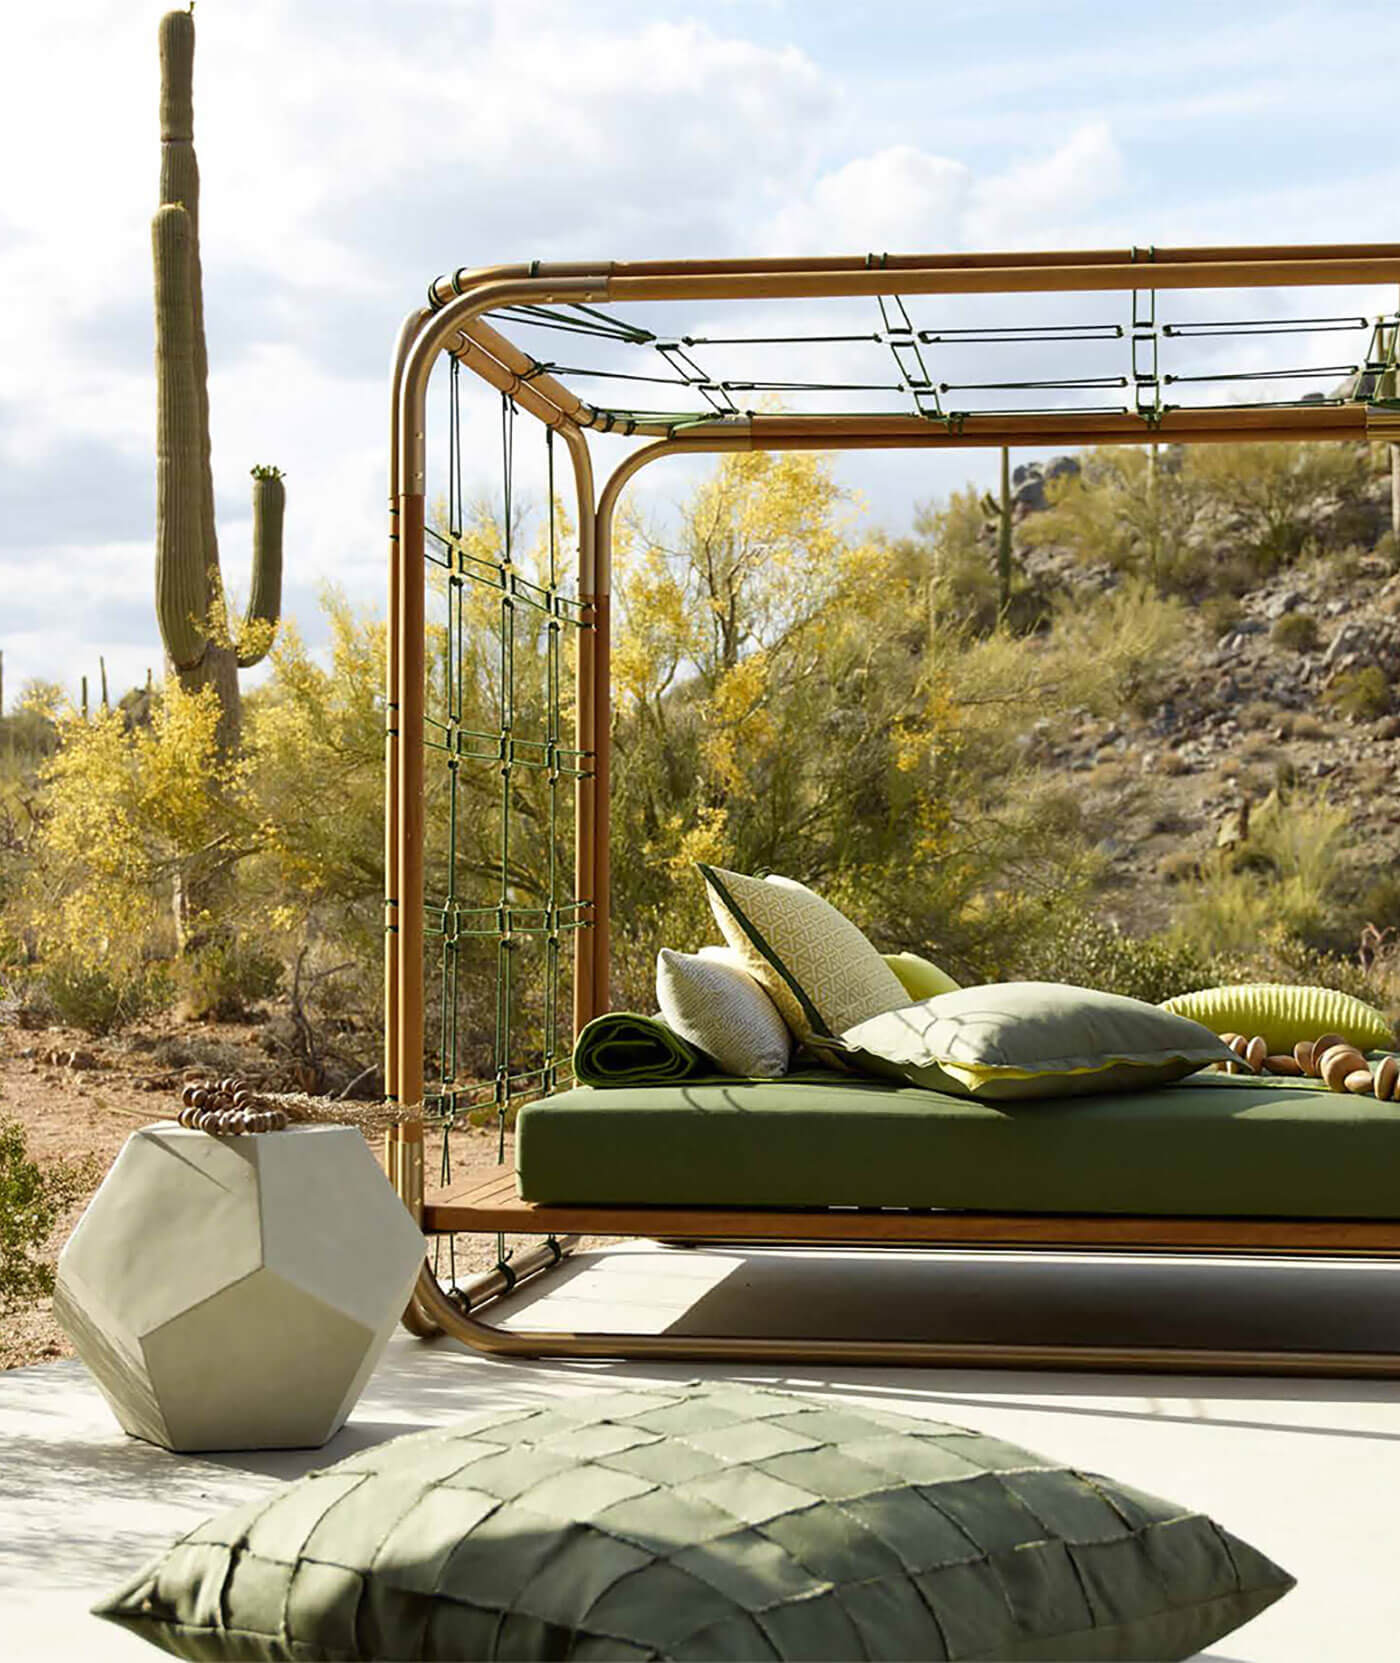 Daybed upholstered with green fabrics on patio with many decorative throw pillows